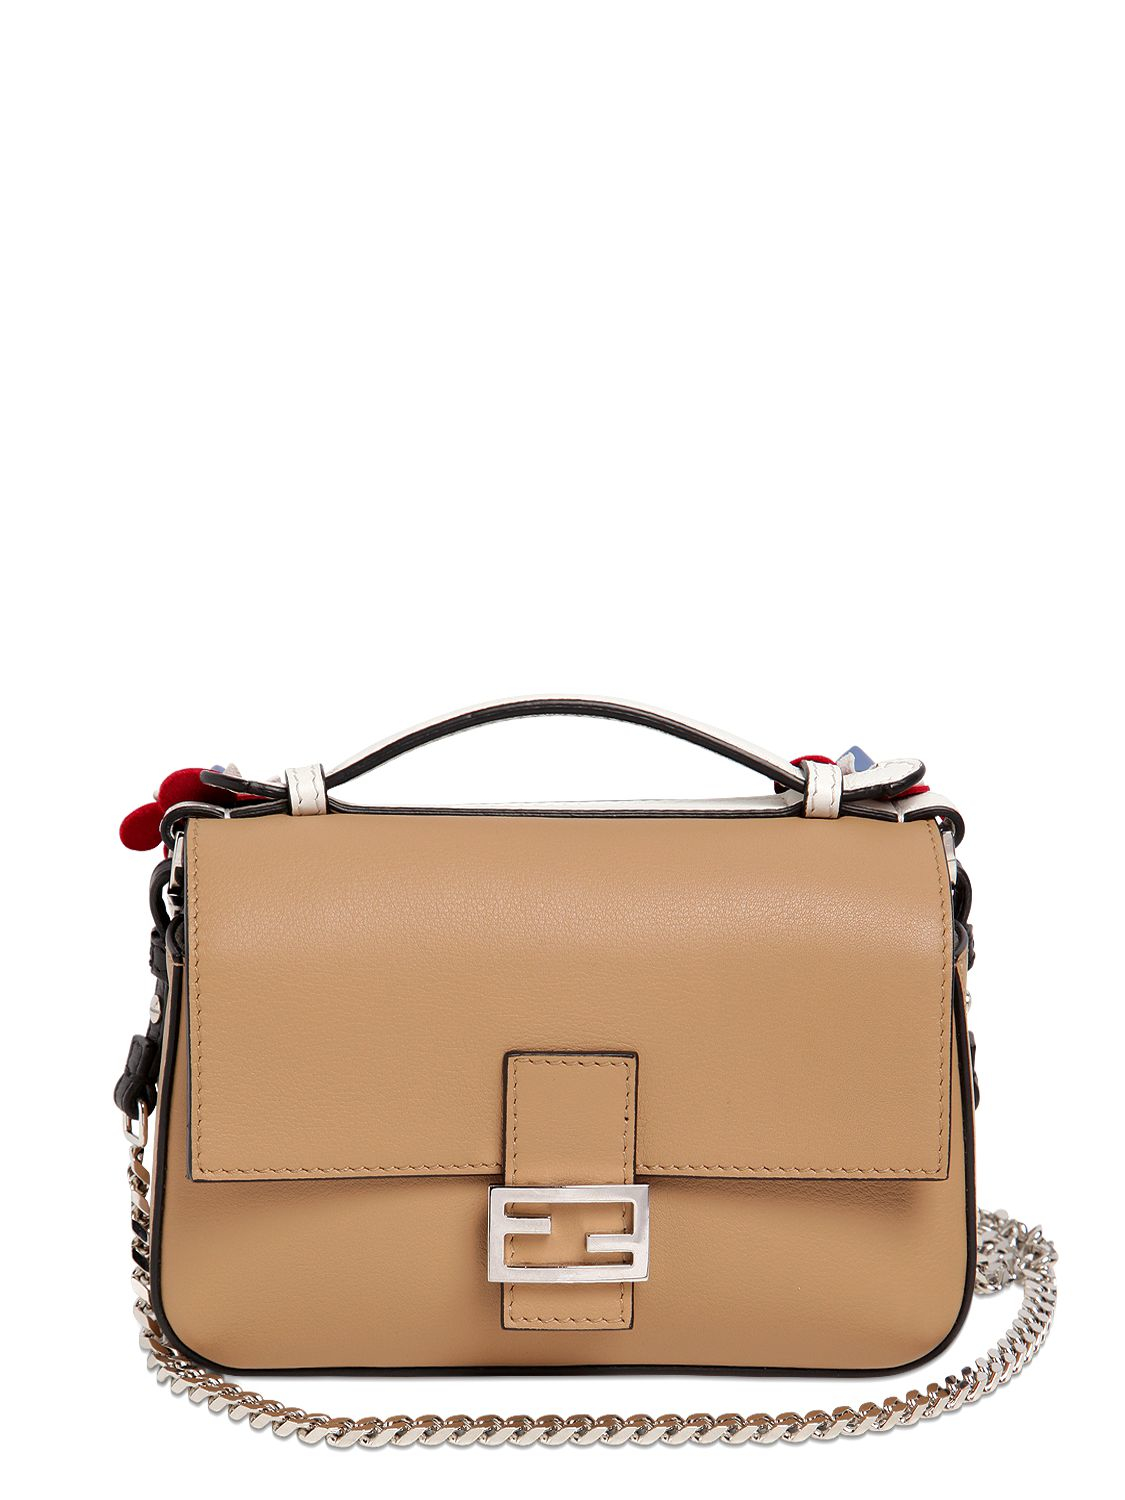 c2fa098c2003 Fendi Micro Double Baguette in Black - Lyst